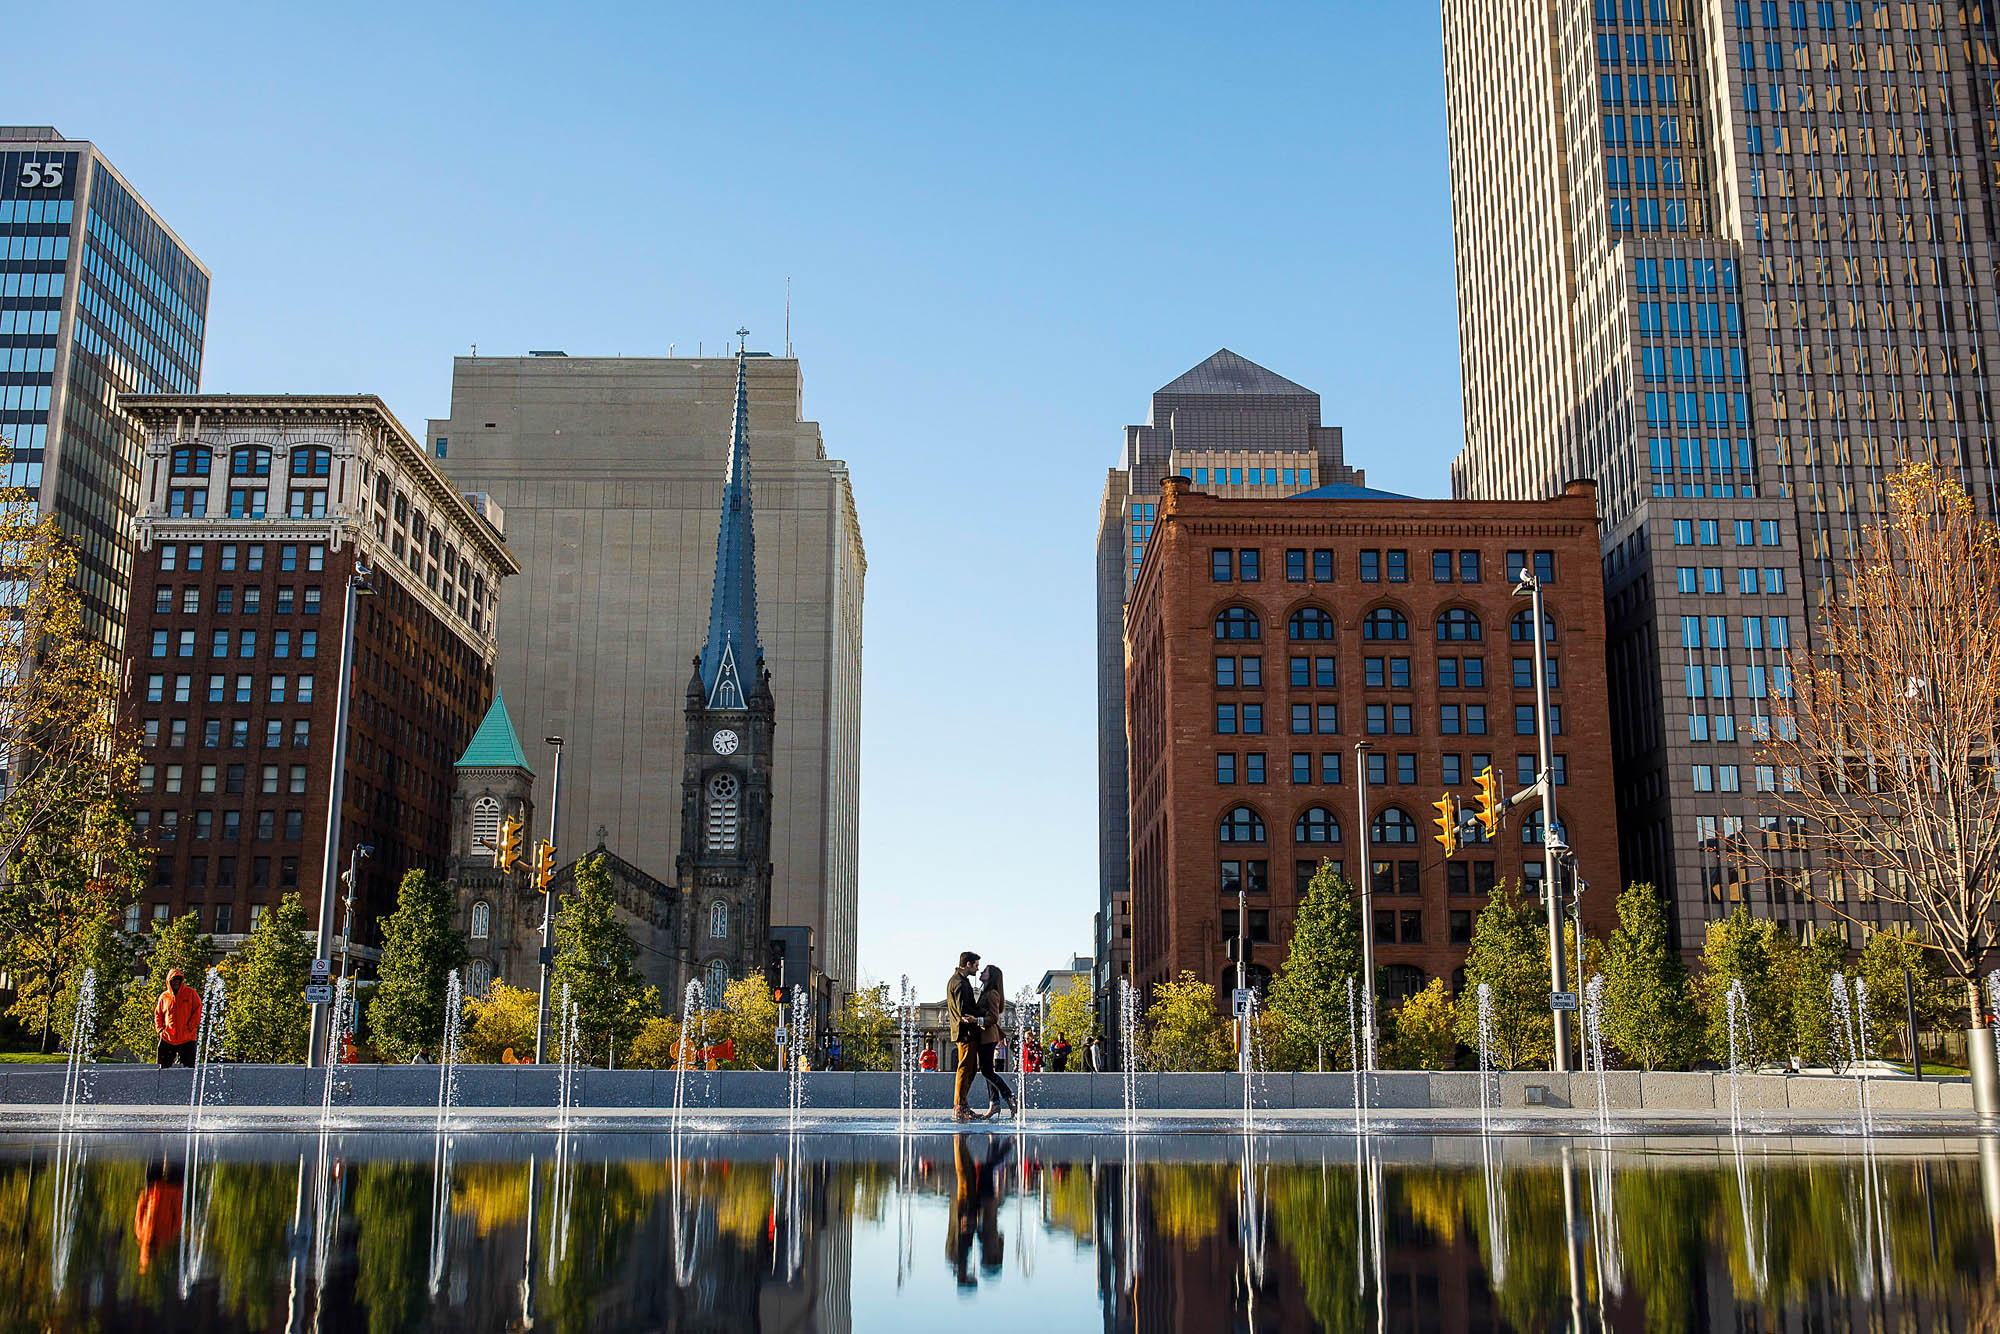 A picture of an engaged couple taken from a distance where the couple is standing in each other's arms silhouetted against the Cleveland skyline inside public square where their reflection is in the bottom of the photo.